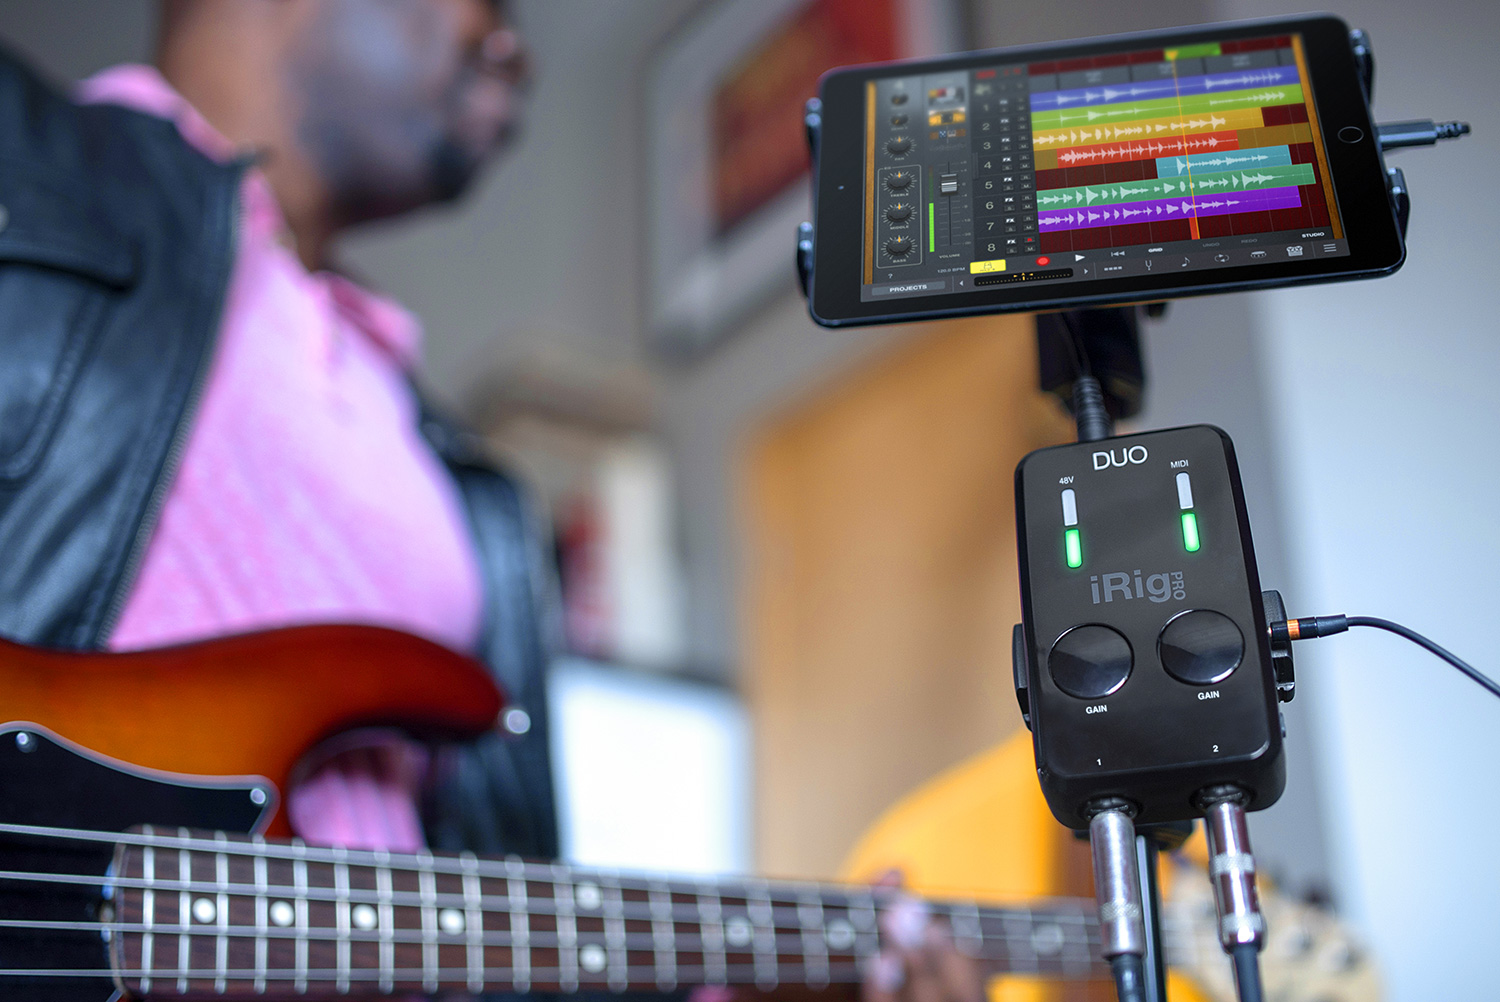 iRig Pro Duo Connected to an iPad